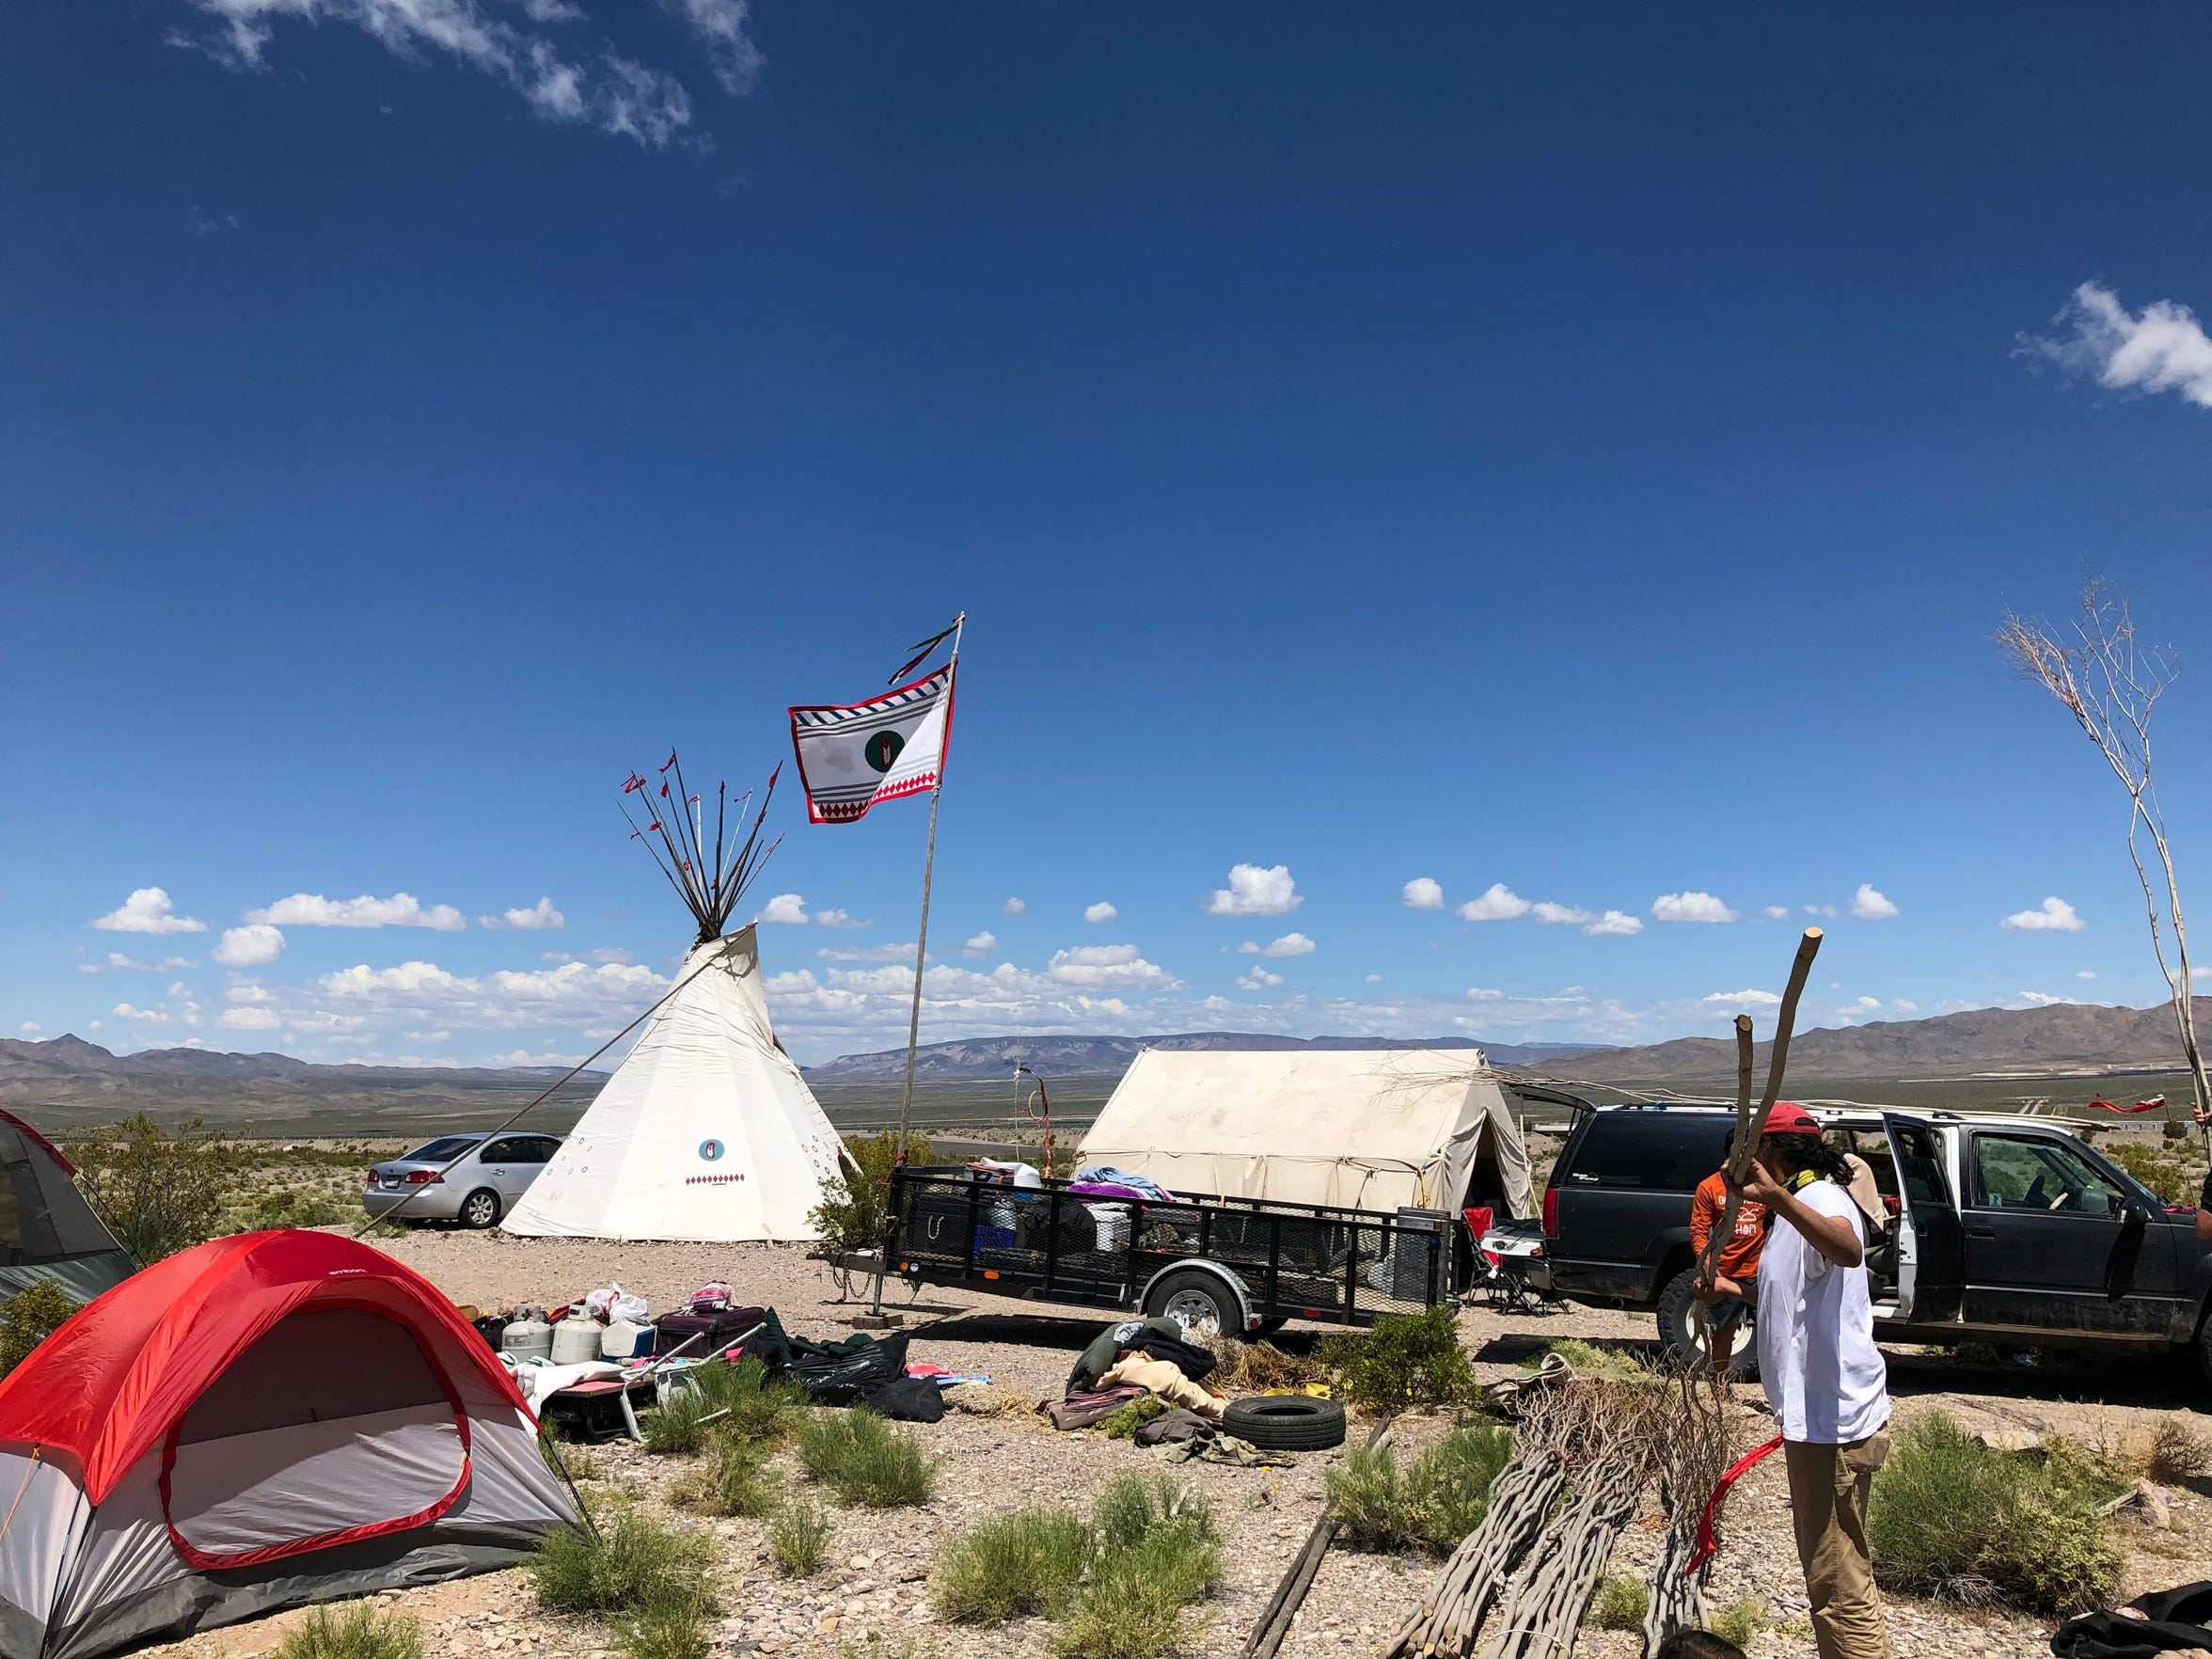 A prayer camp in Mercury, about 70 miles northwest of Las Vegas, built on Mother's Day weekend in protest of a federal push to dump the country's nuclear sludge in Yucca Mountain.